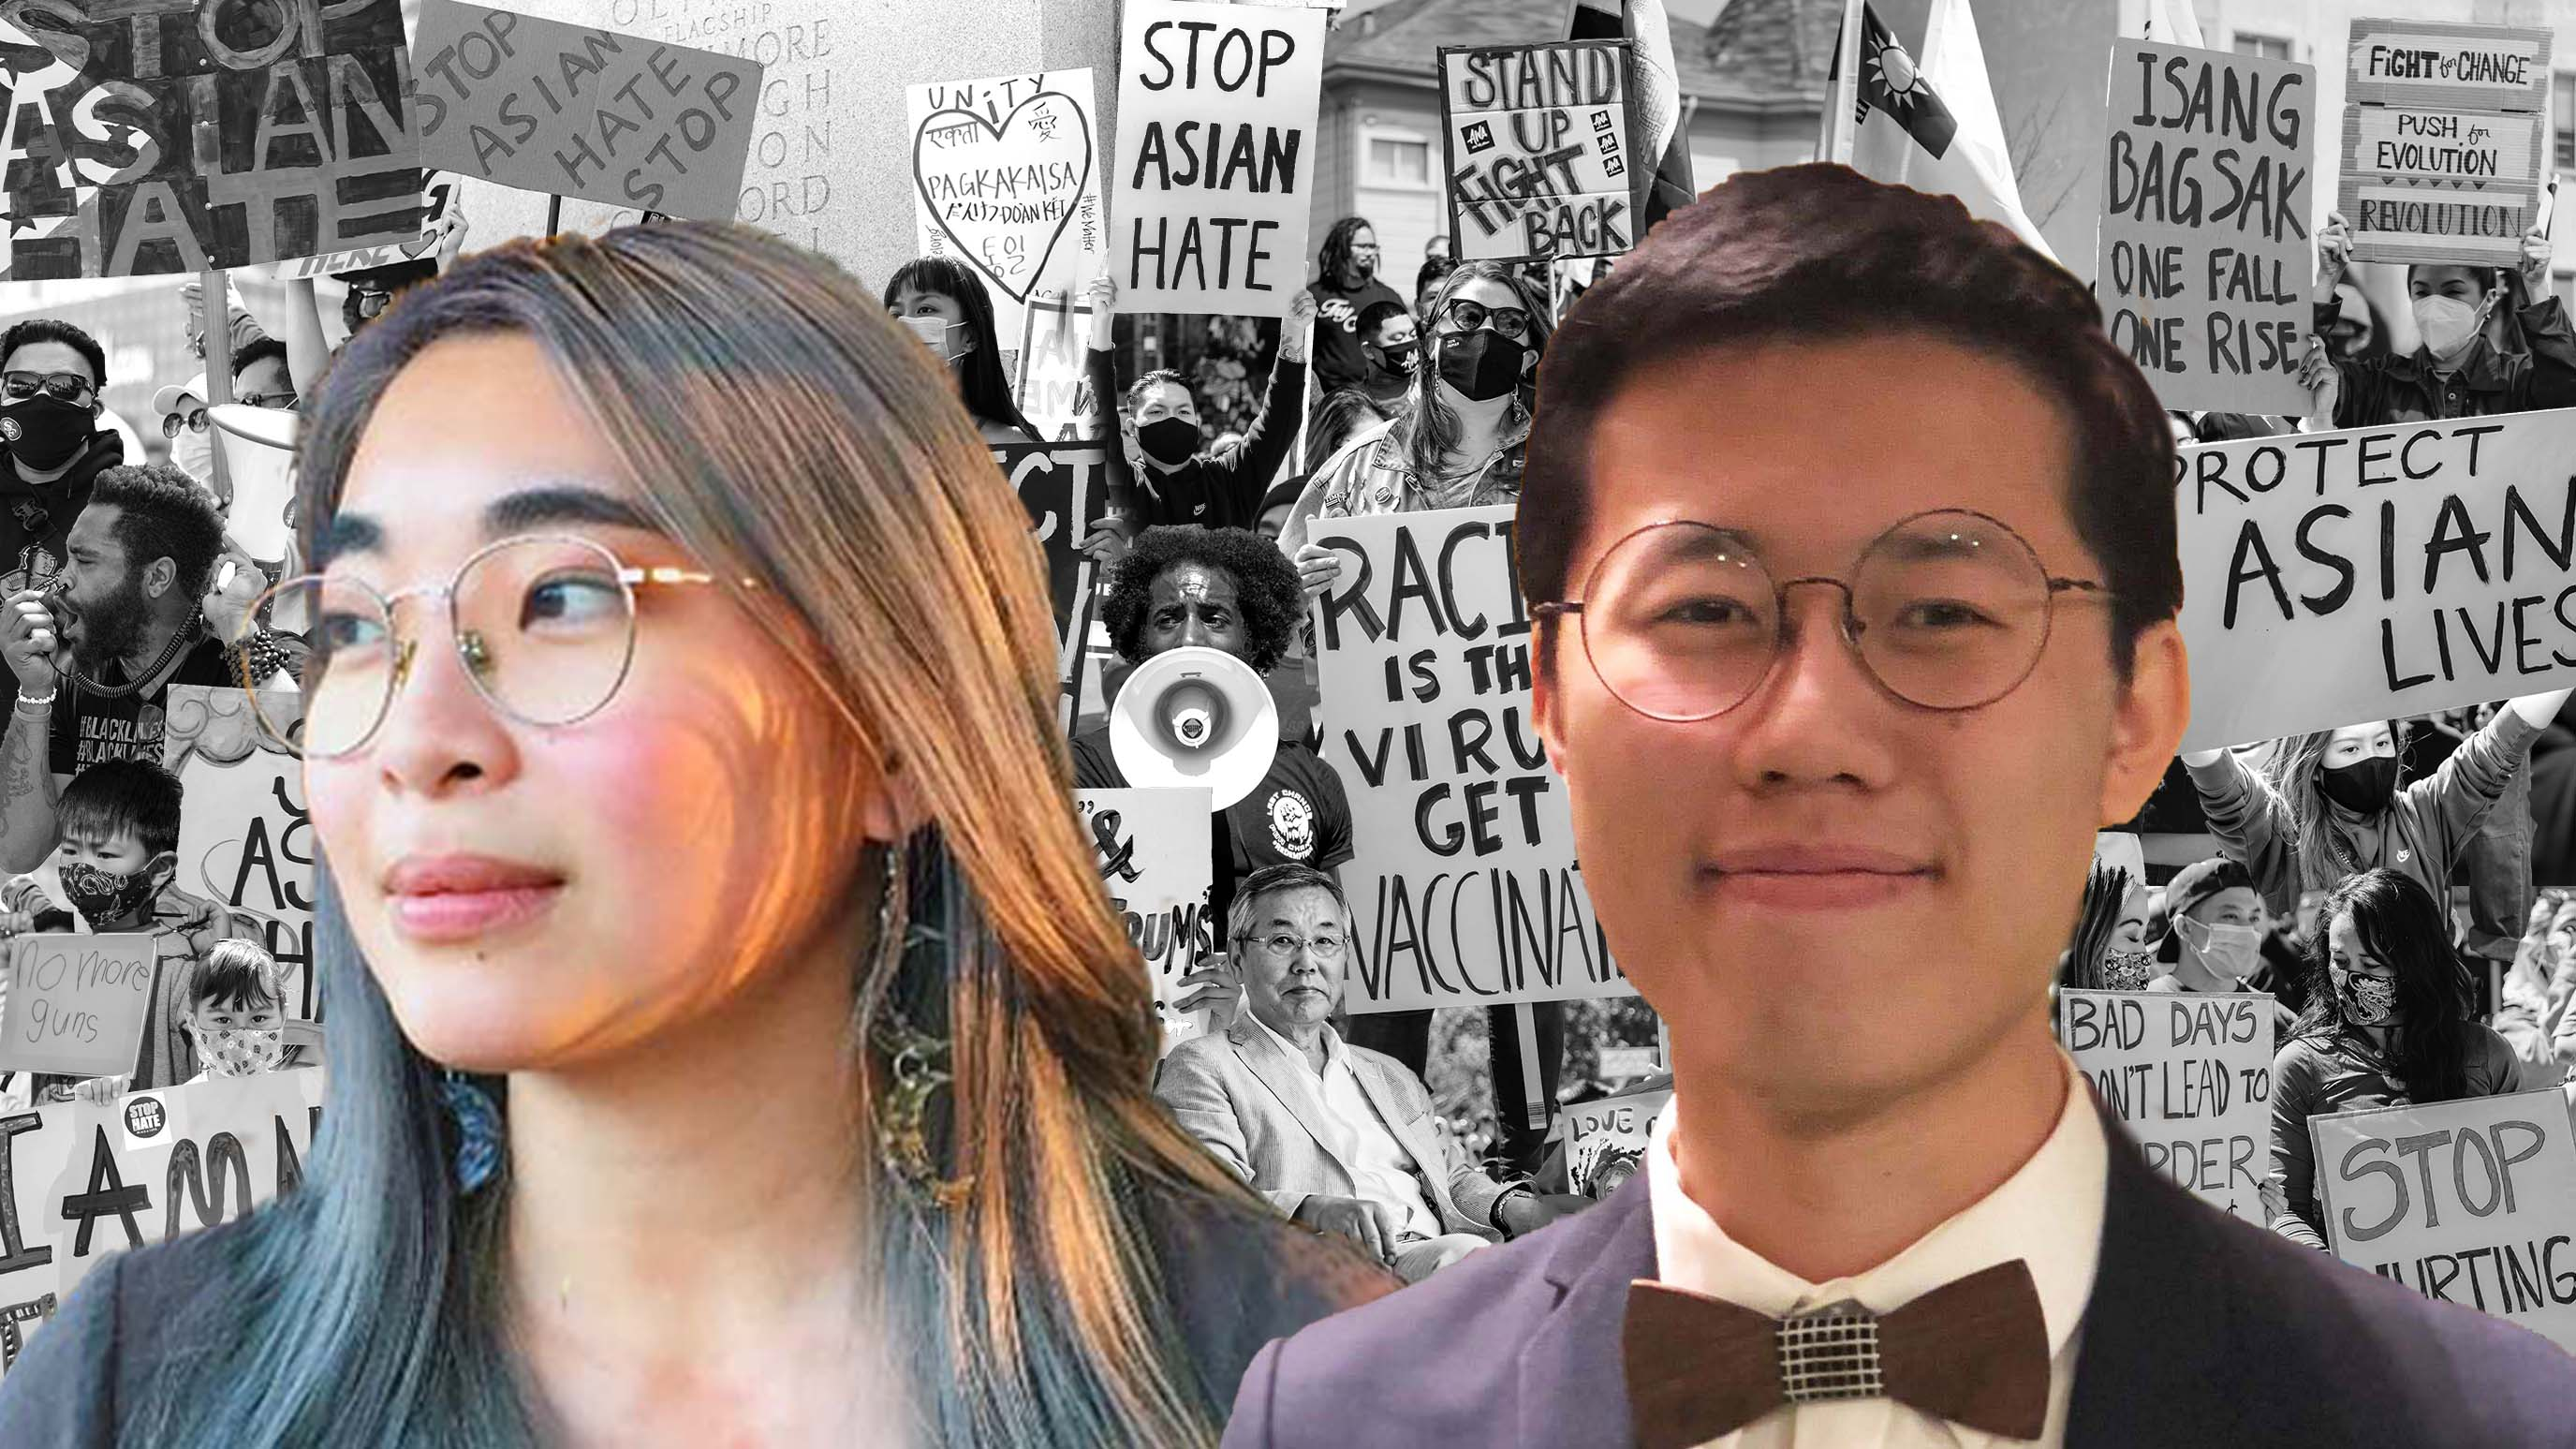 Headshots of Amanda Wan and Patrick Leong layered over a black and white collage of protestors holding signs against anti-Asian racism.